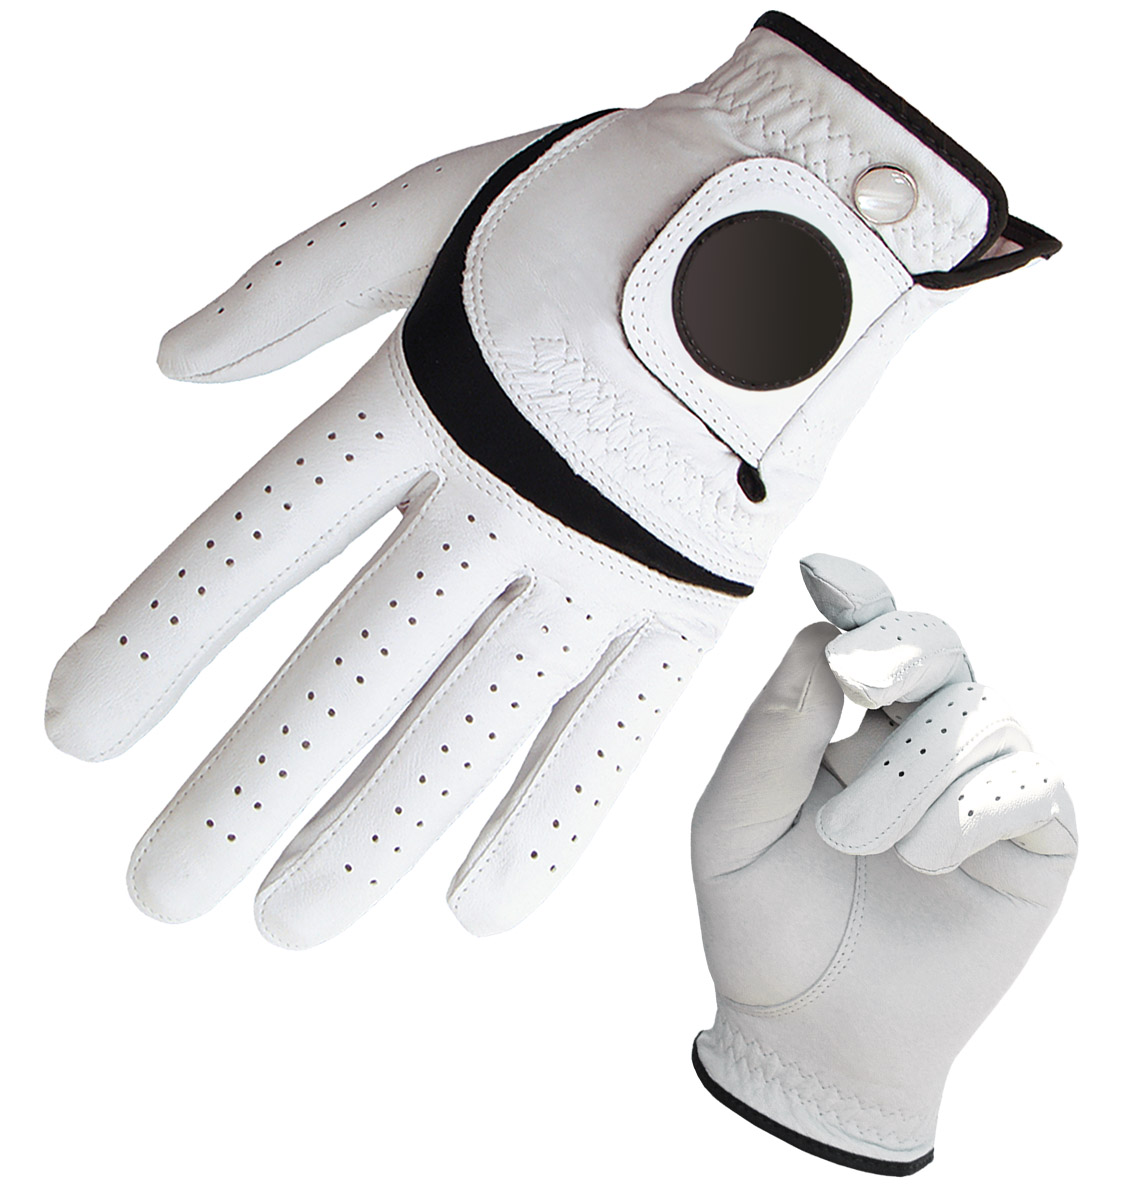 Cabretta Golf Gloves (2 Pack)